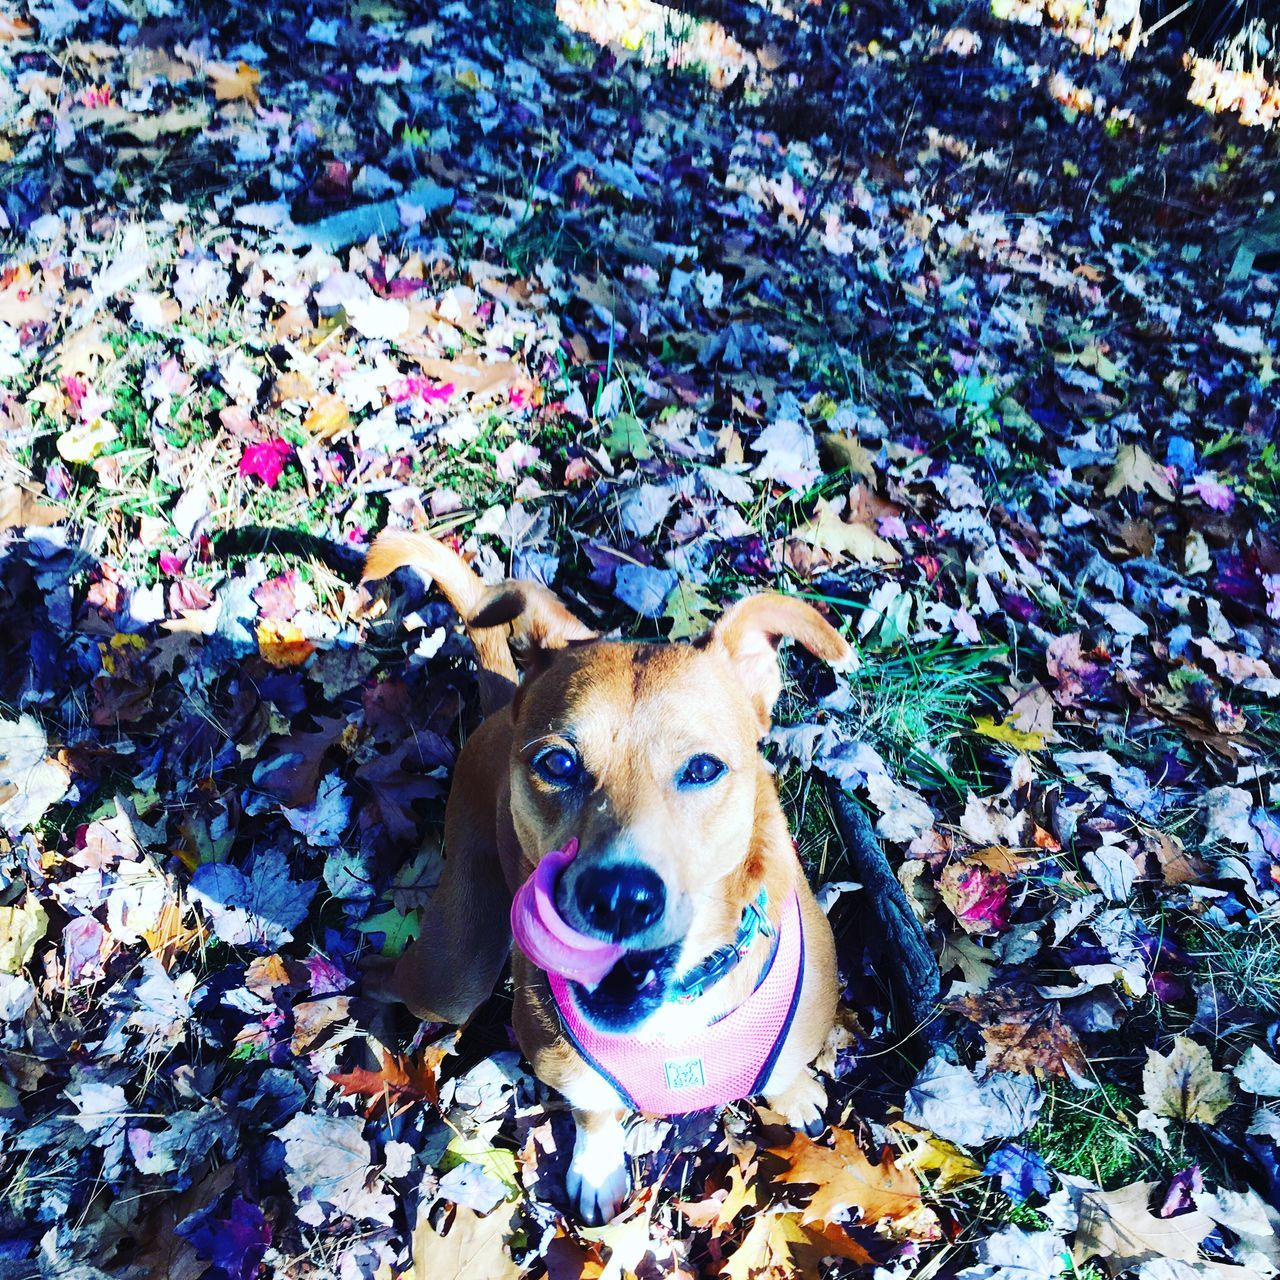 dog, pets, one animal, looking at camera, animal themes, domestic animals, portrait, leaf, mammal, high angle view, day, lying down, pit bull terrier, outdoors, no people, nature, close-up, beagle